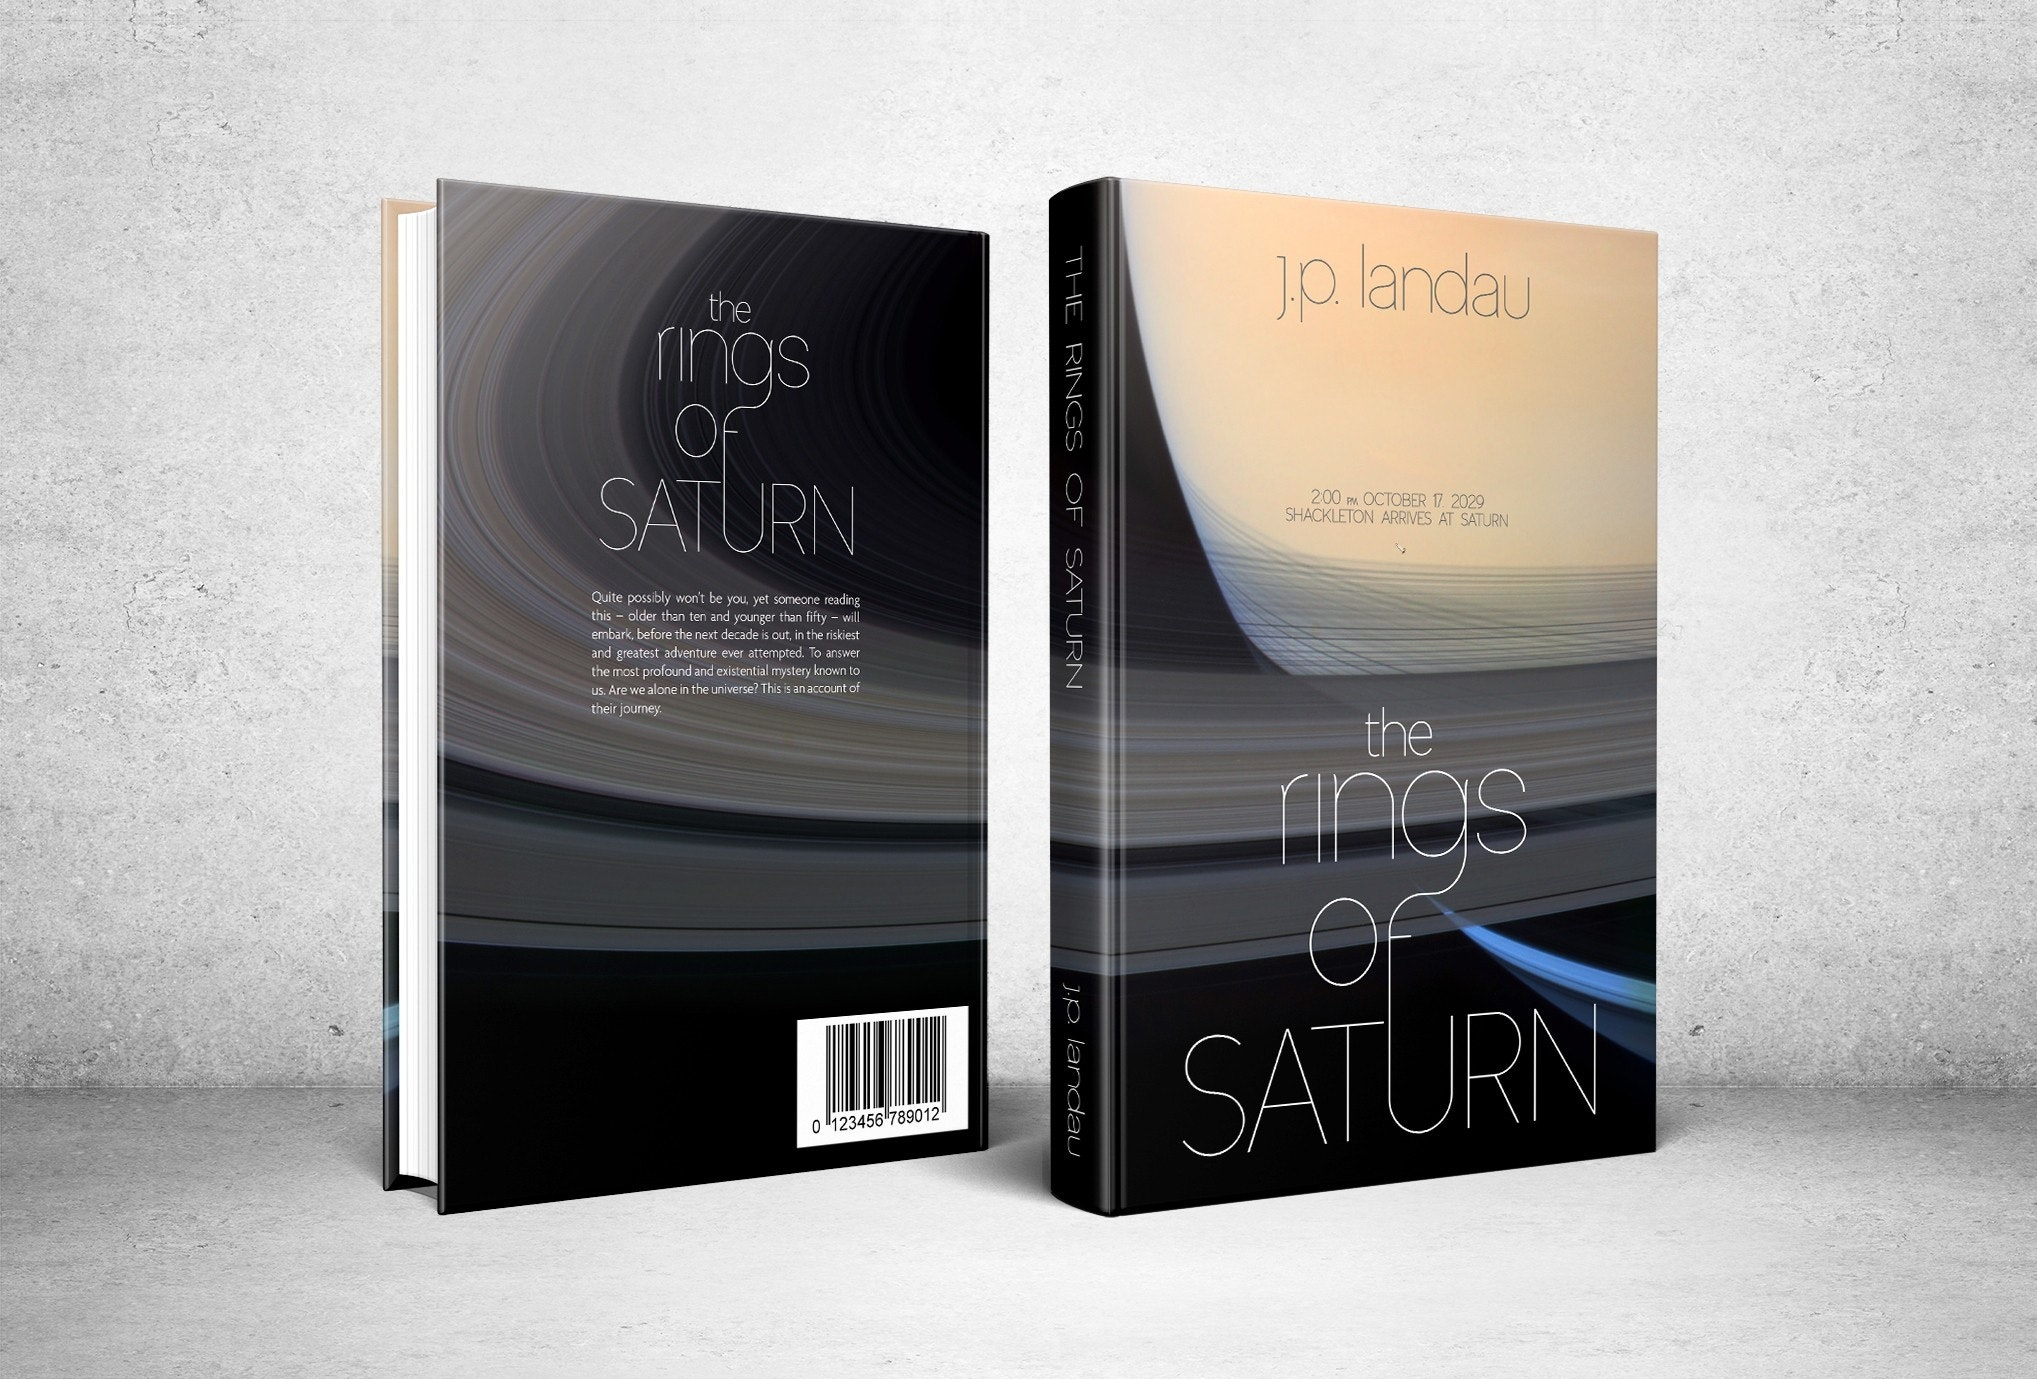 A delightful book cover Rings of Saturn